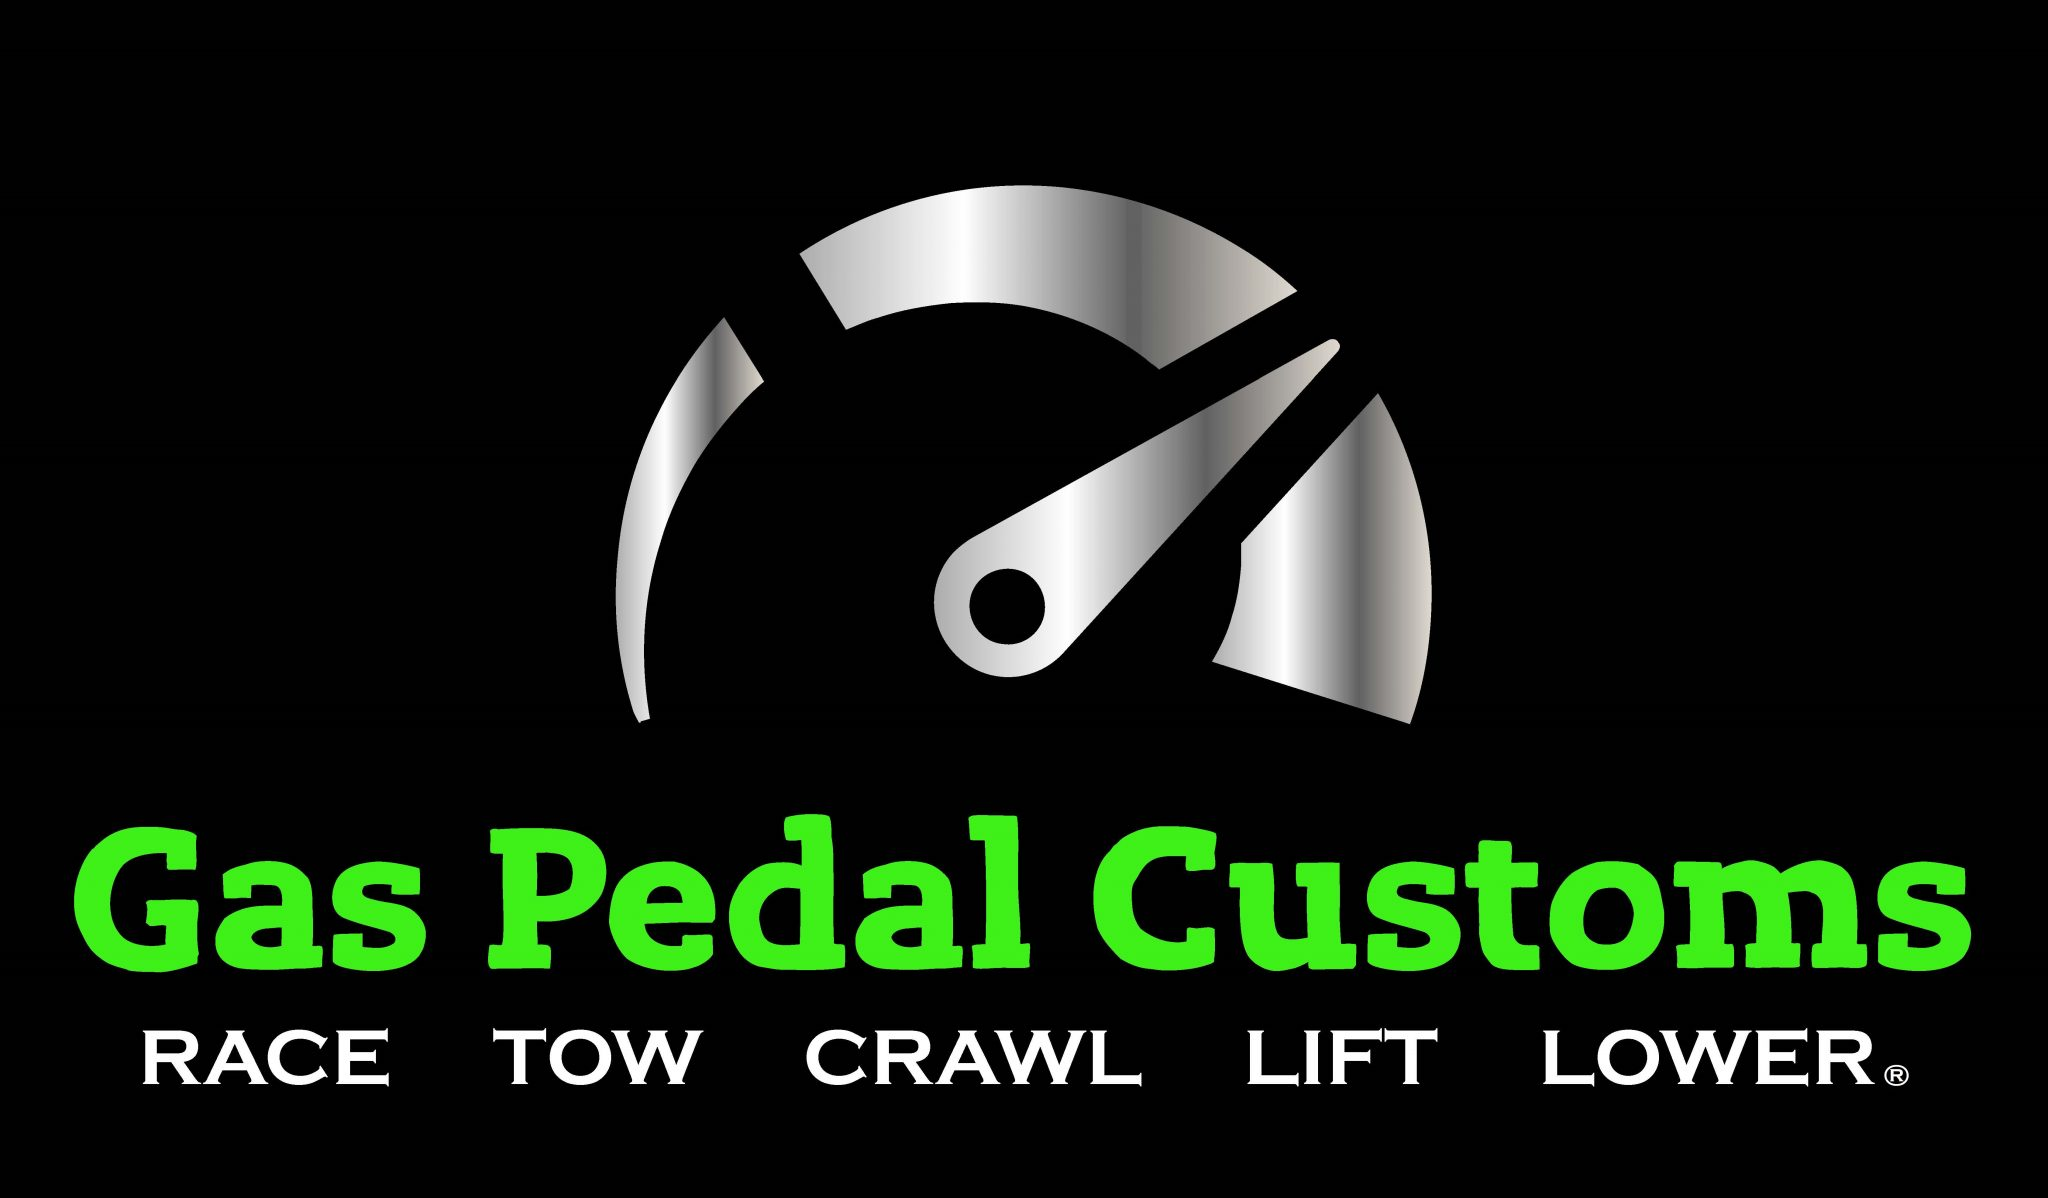 Gas Pedal Customs - Automotive Customizing Shop in Ada, Michigan